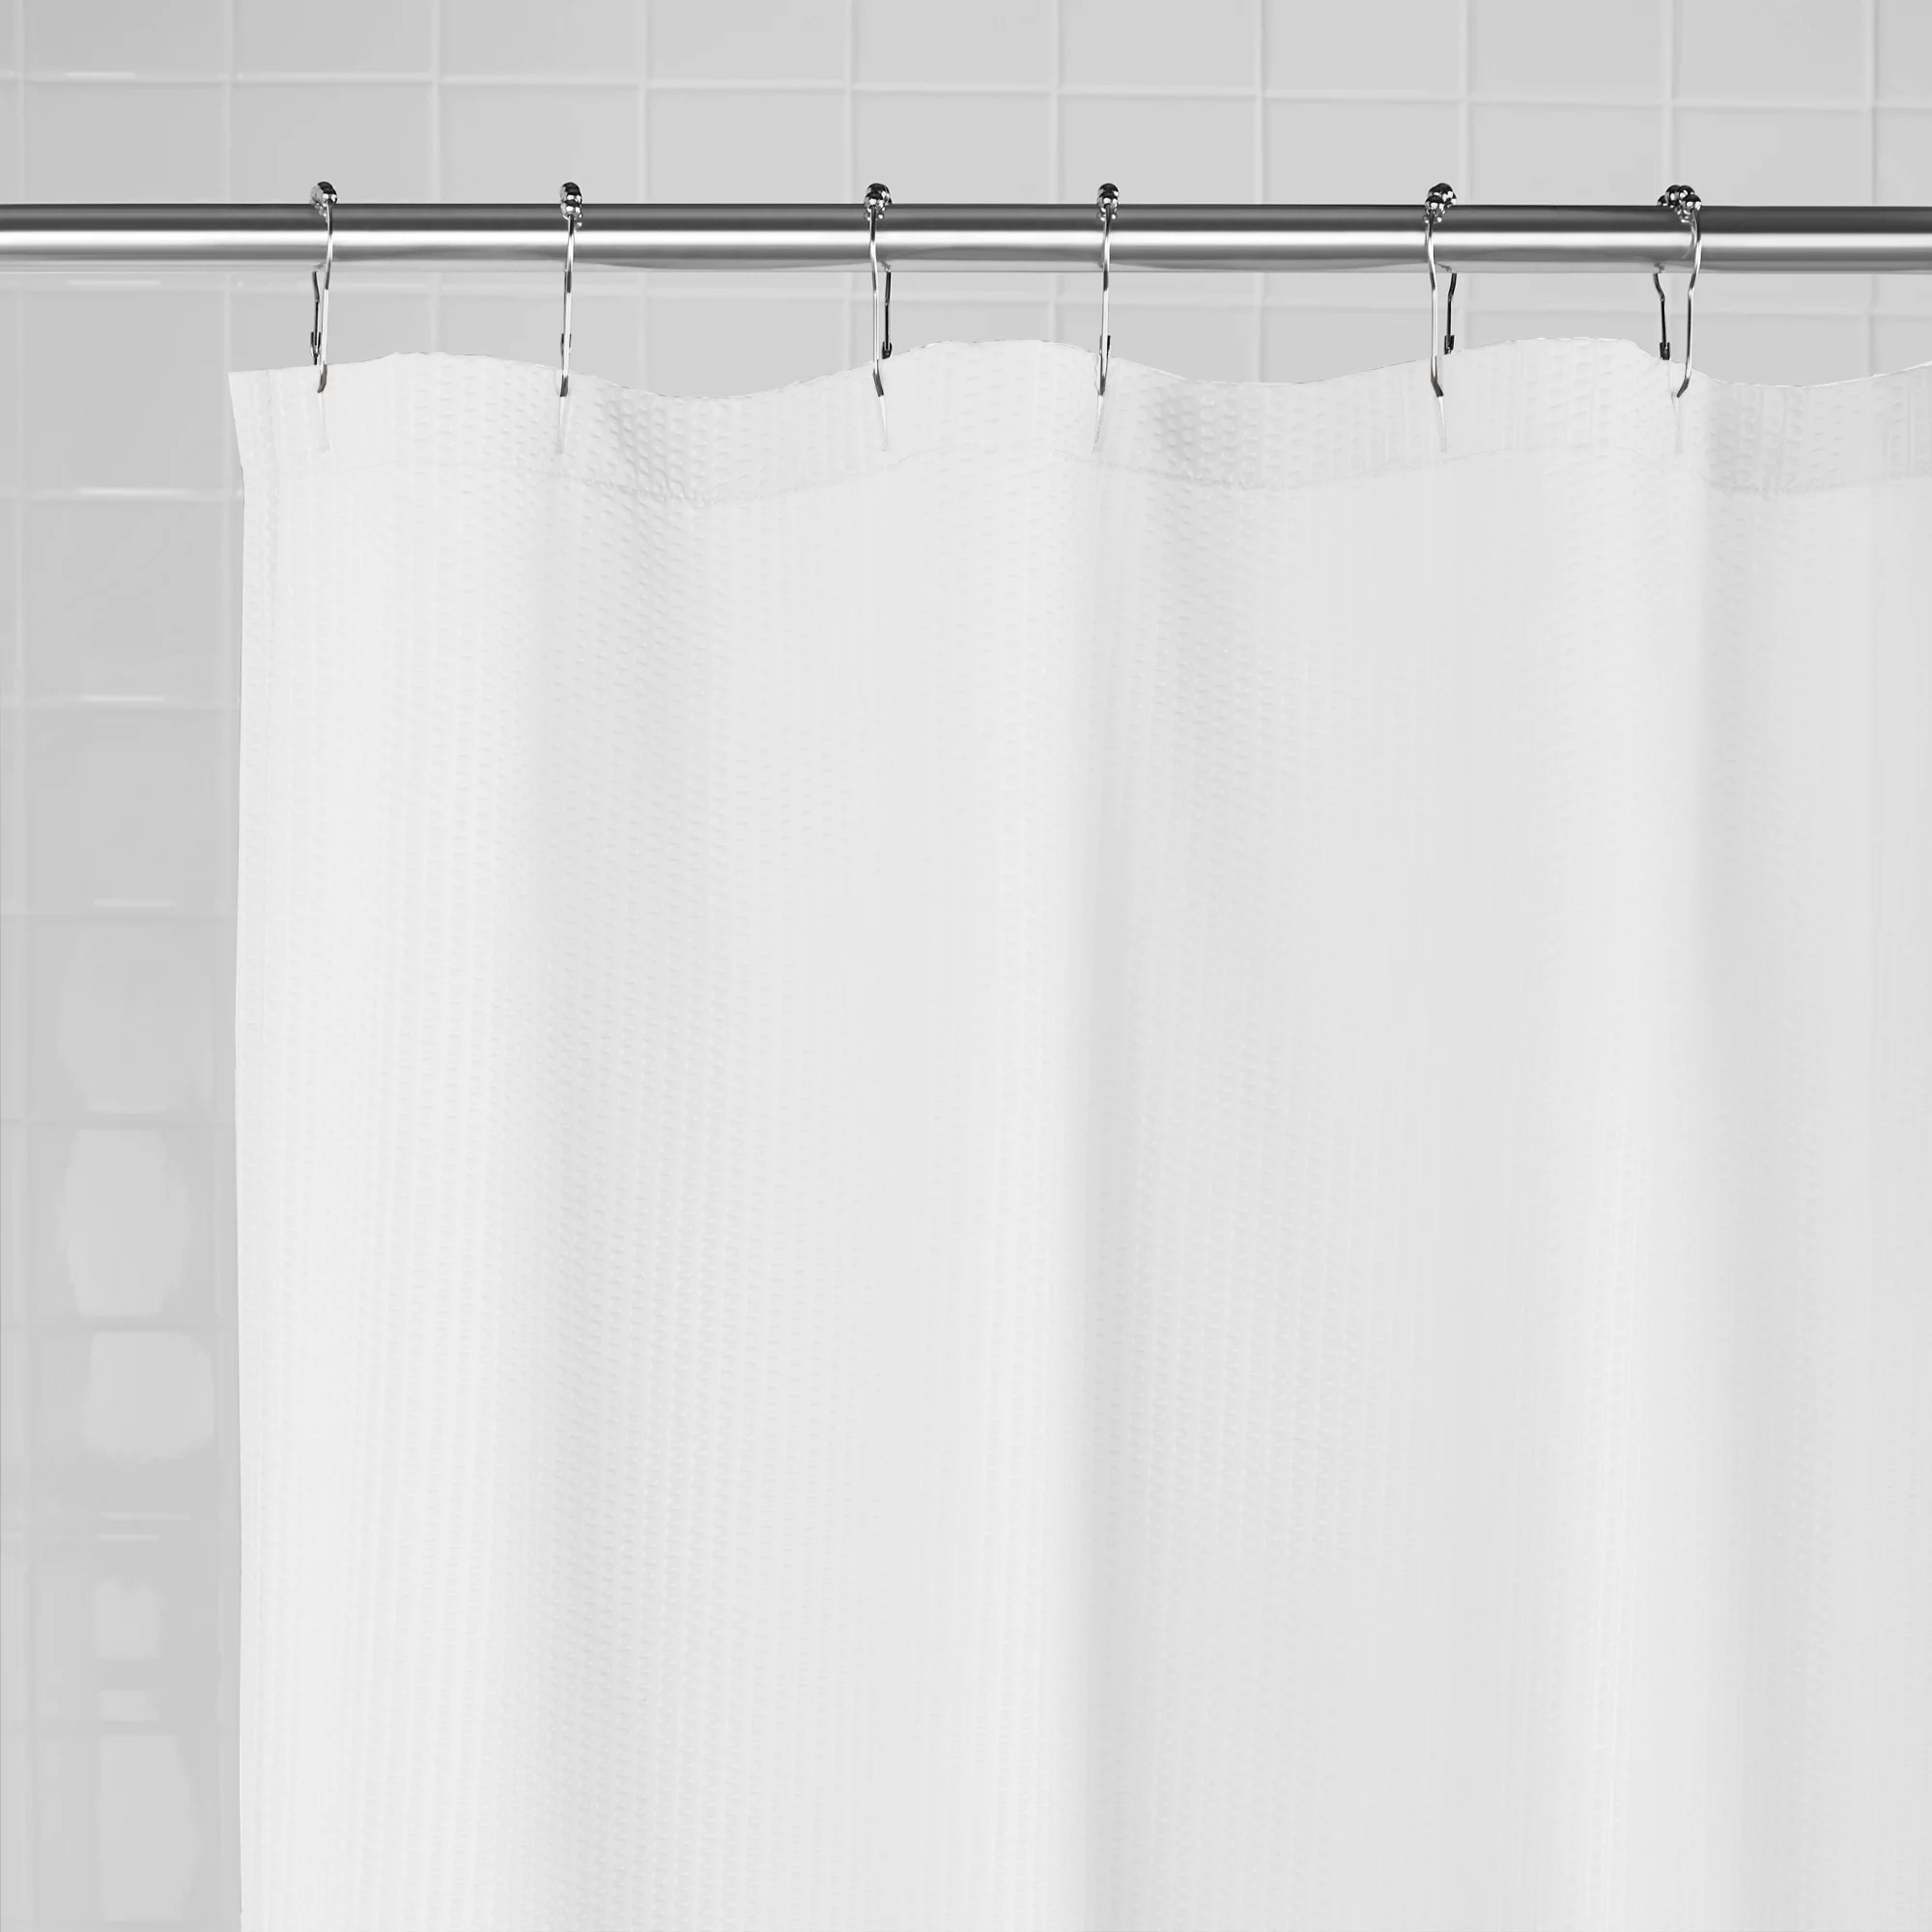 mainstays water repellent textured fabric shower liner 70 inches x 72 inches white